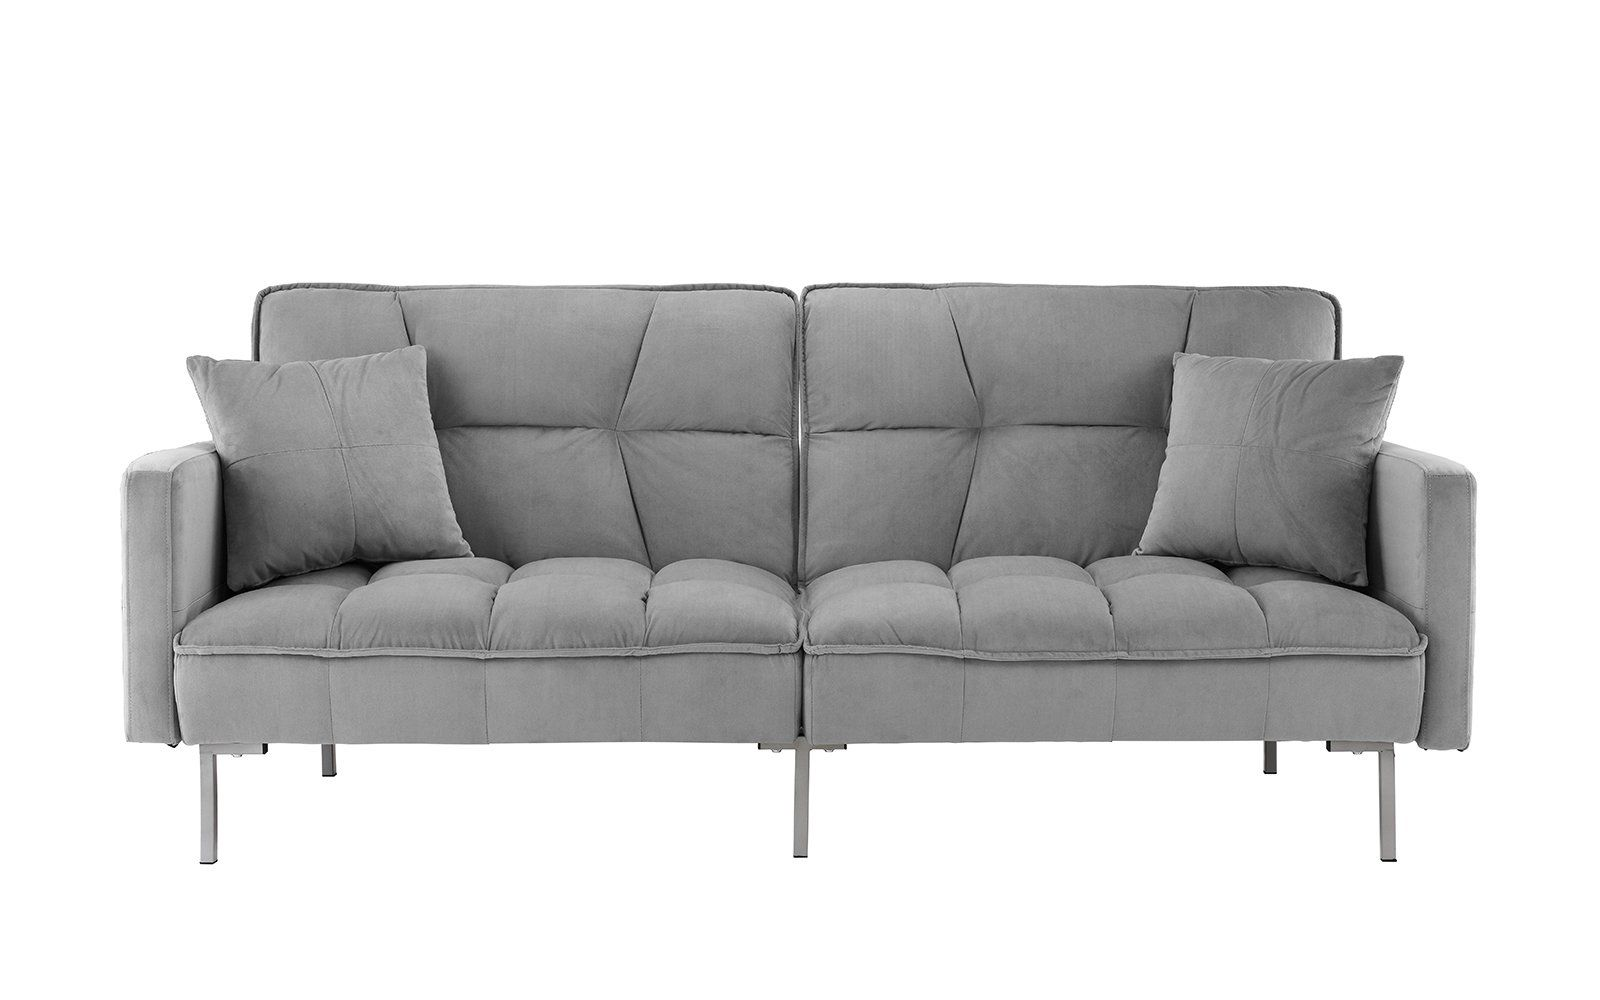 Myla Modern Tufted Velvet Splitback Futon Sleeper Sofa Sleeper Sofa Sofa Living Room Sofa